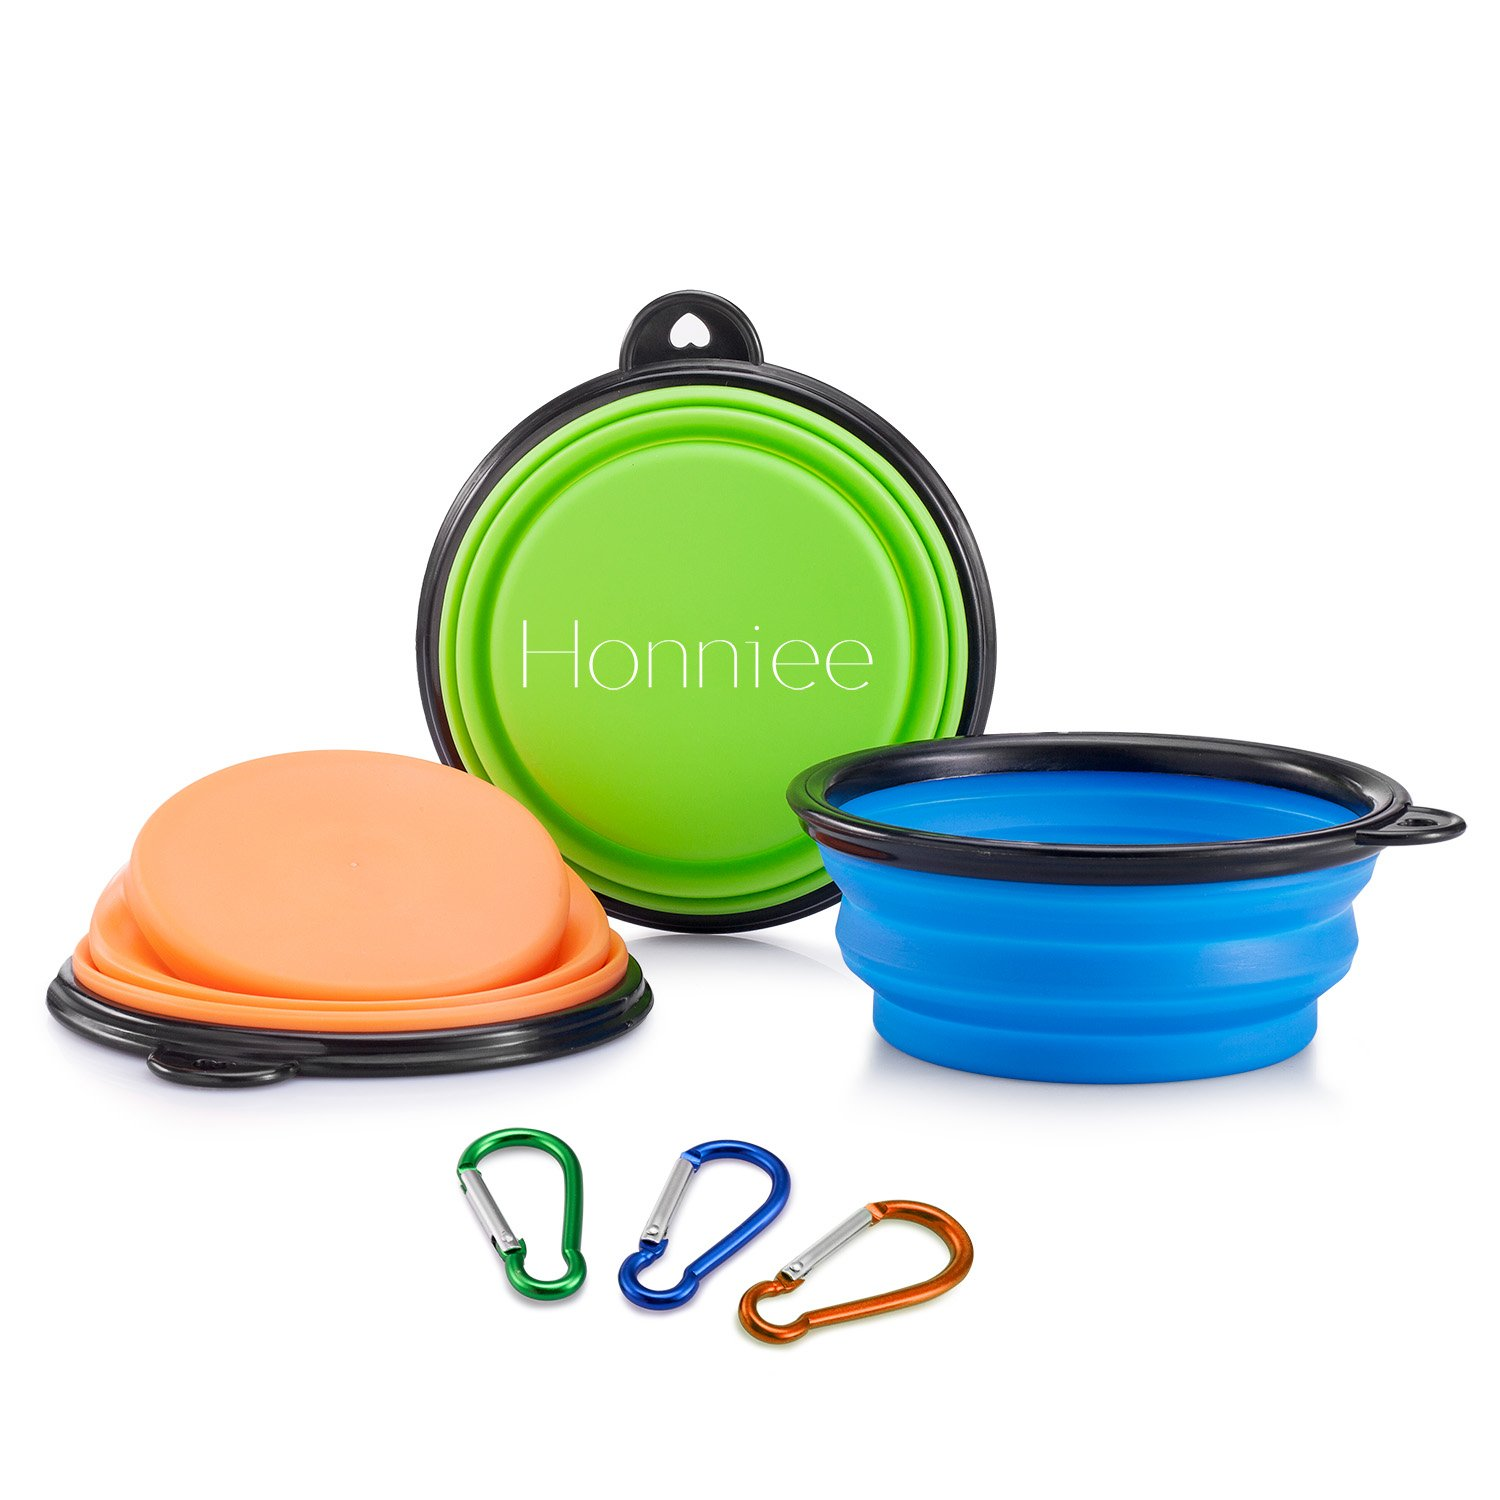 Honniee Collapsible Dog Bowl - Foldable Expandable Cup Dish for Food Water Feeding - BPA Free FDA Approved Silicone with Free Carabiner(3 Pack)